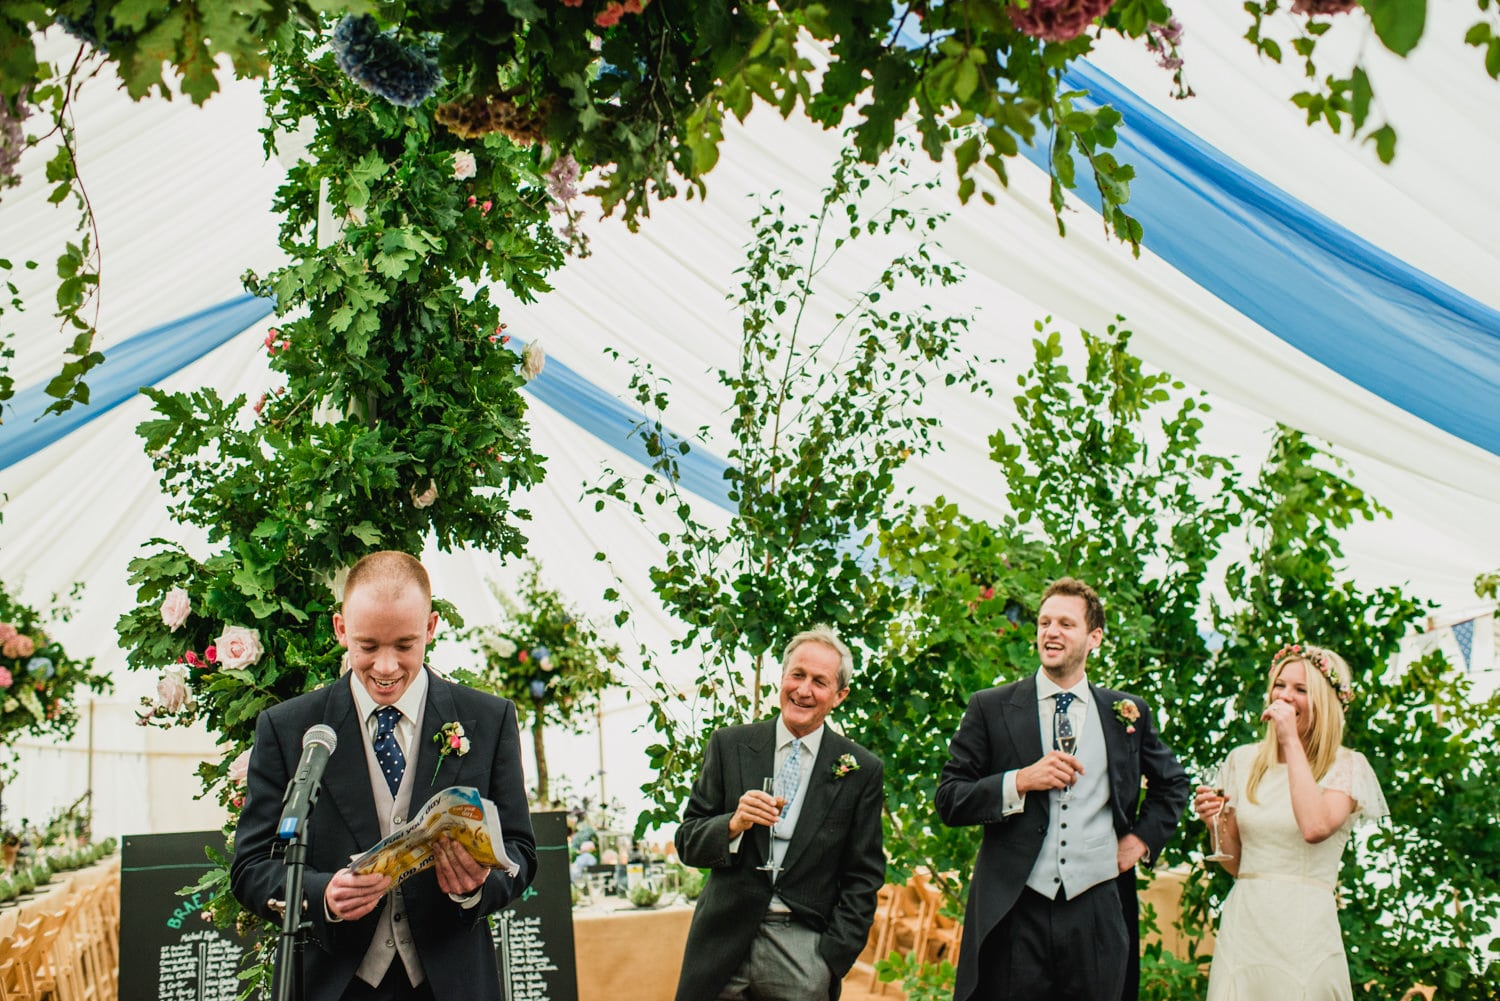 Dorset Country wedding speeches